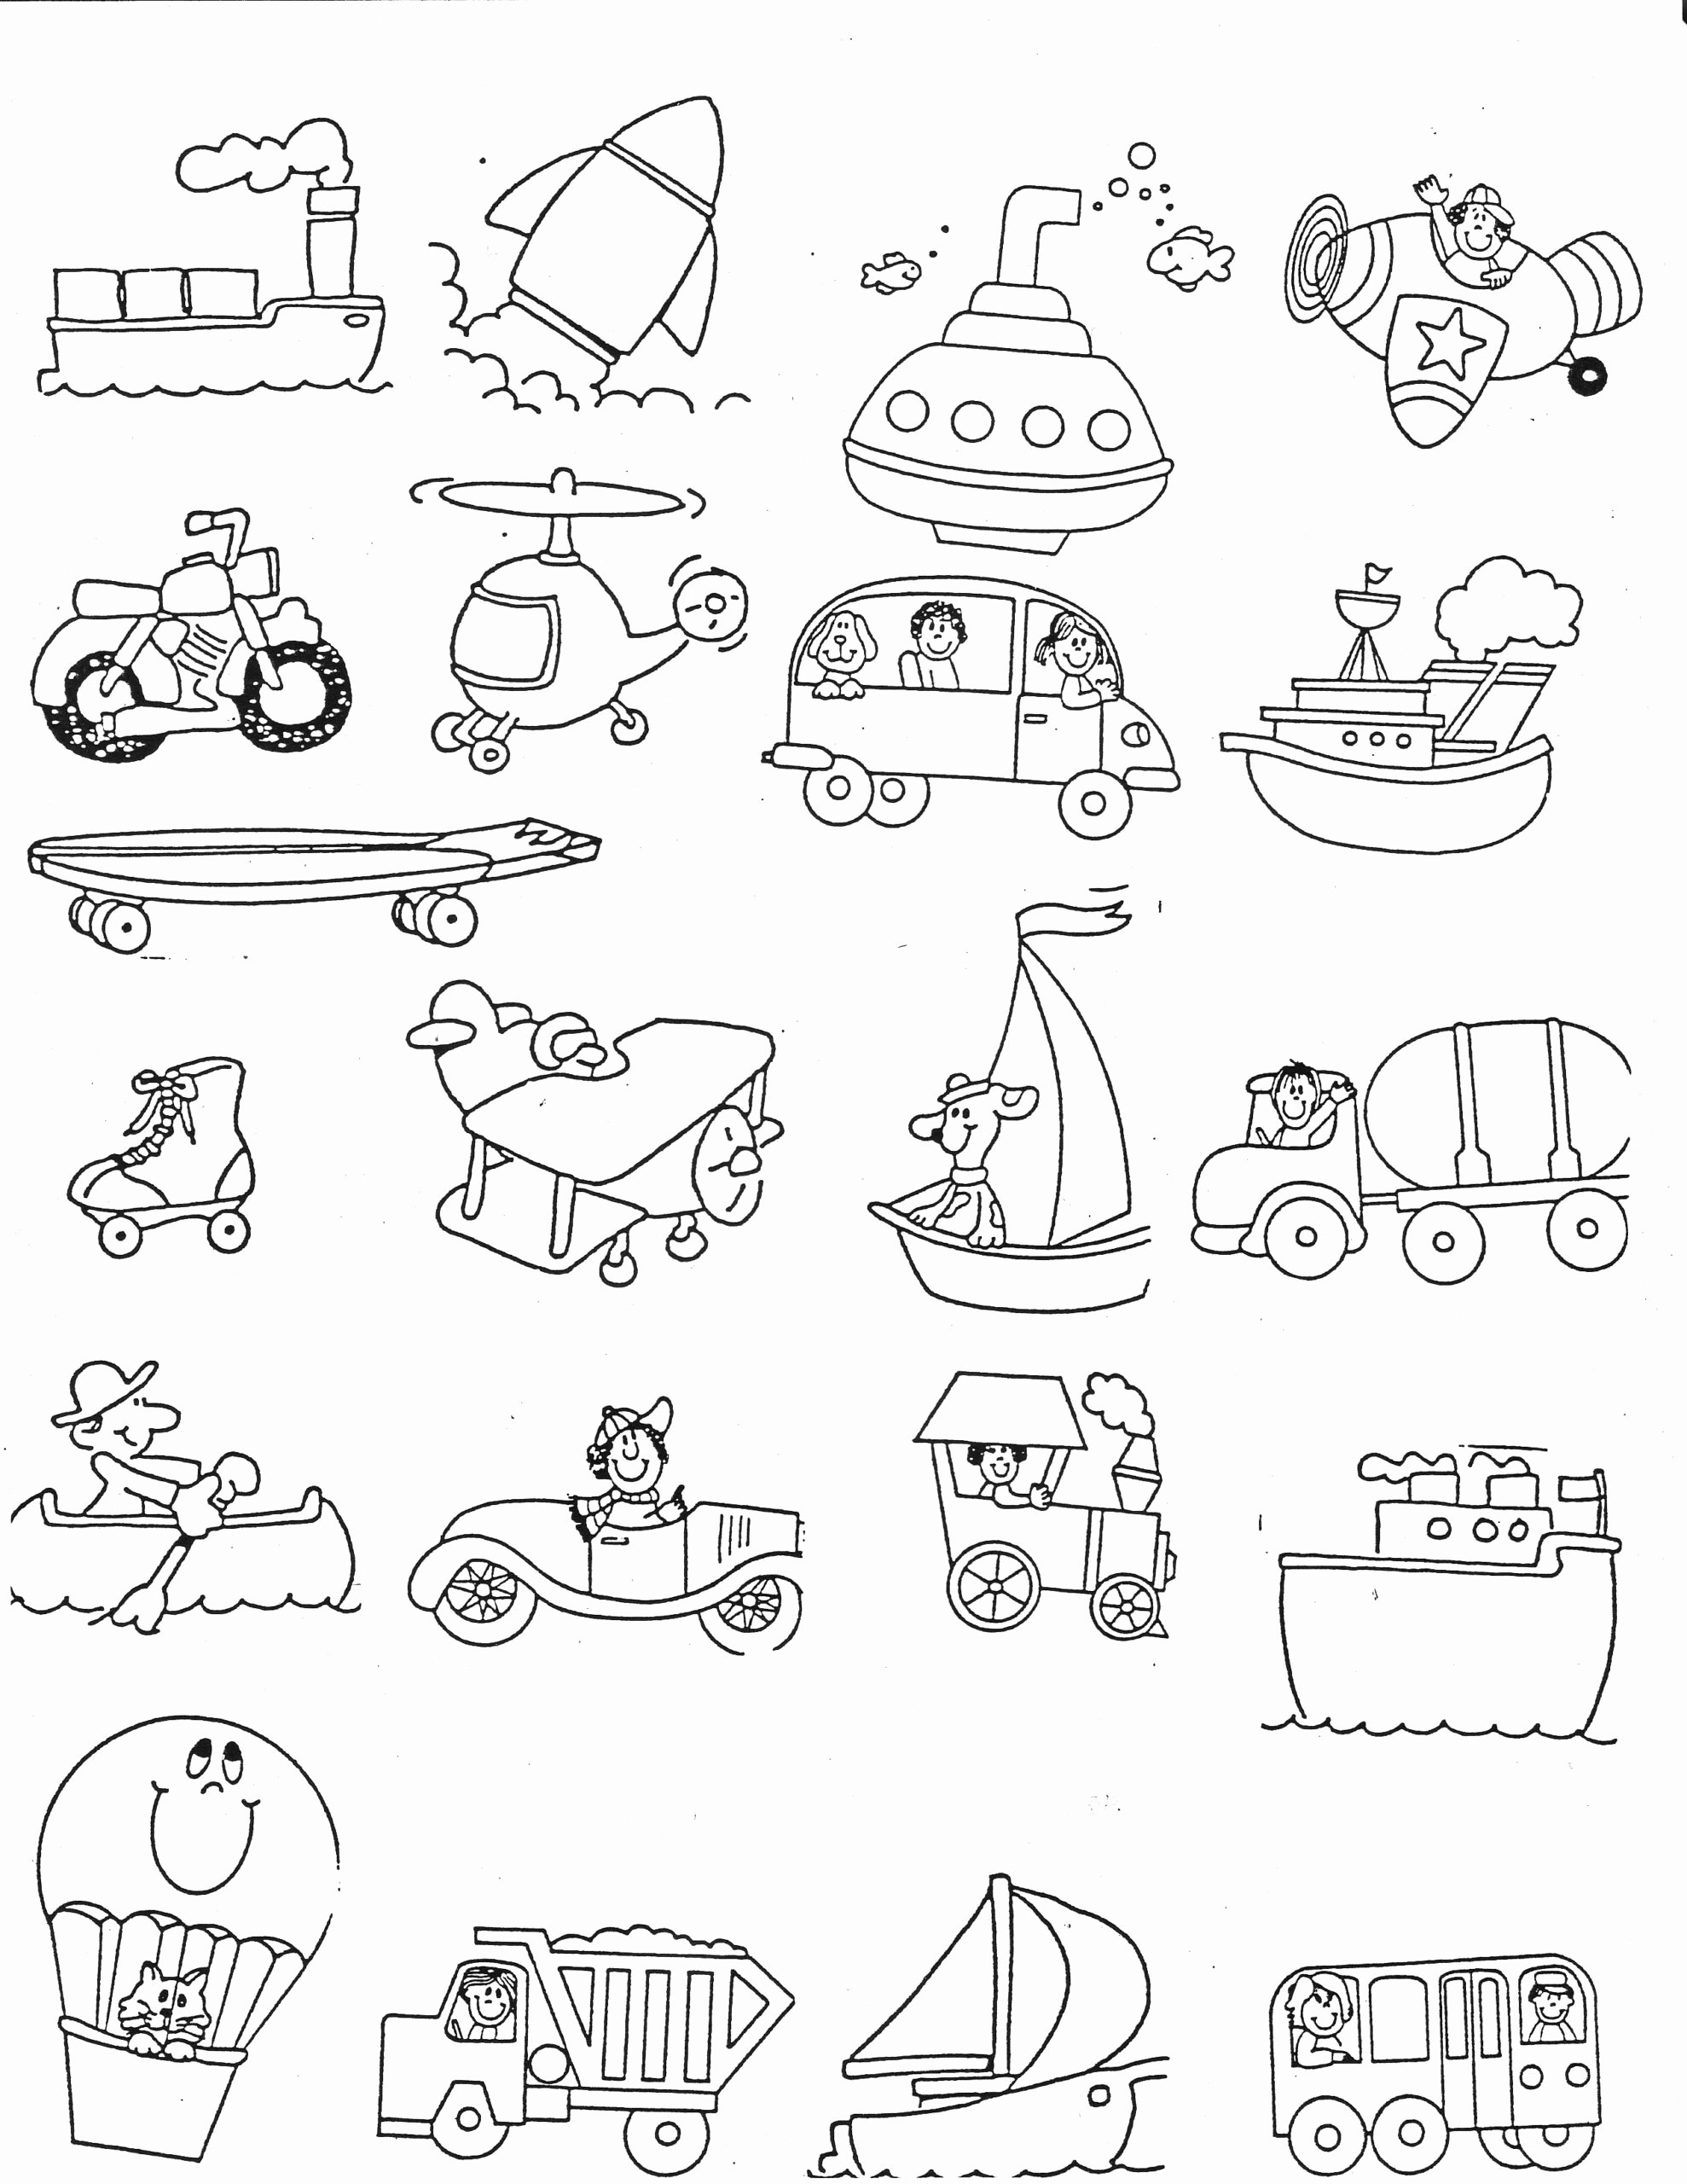 Transportation Worksheets for Preschoolers Inspirational Worksheets Transportation Kindergarten Nana Half Worksheet